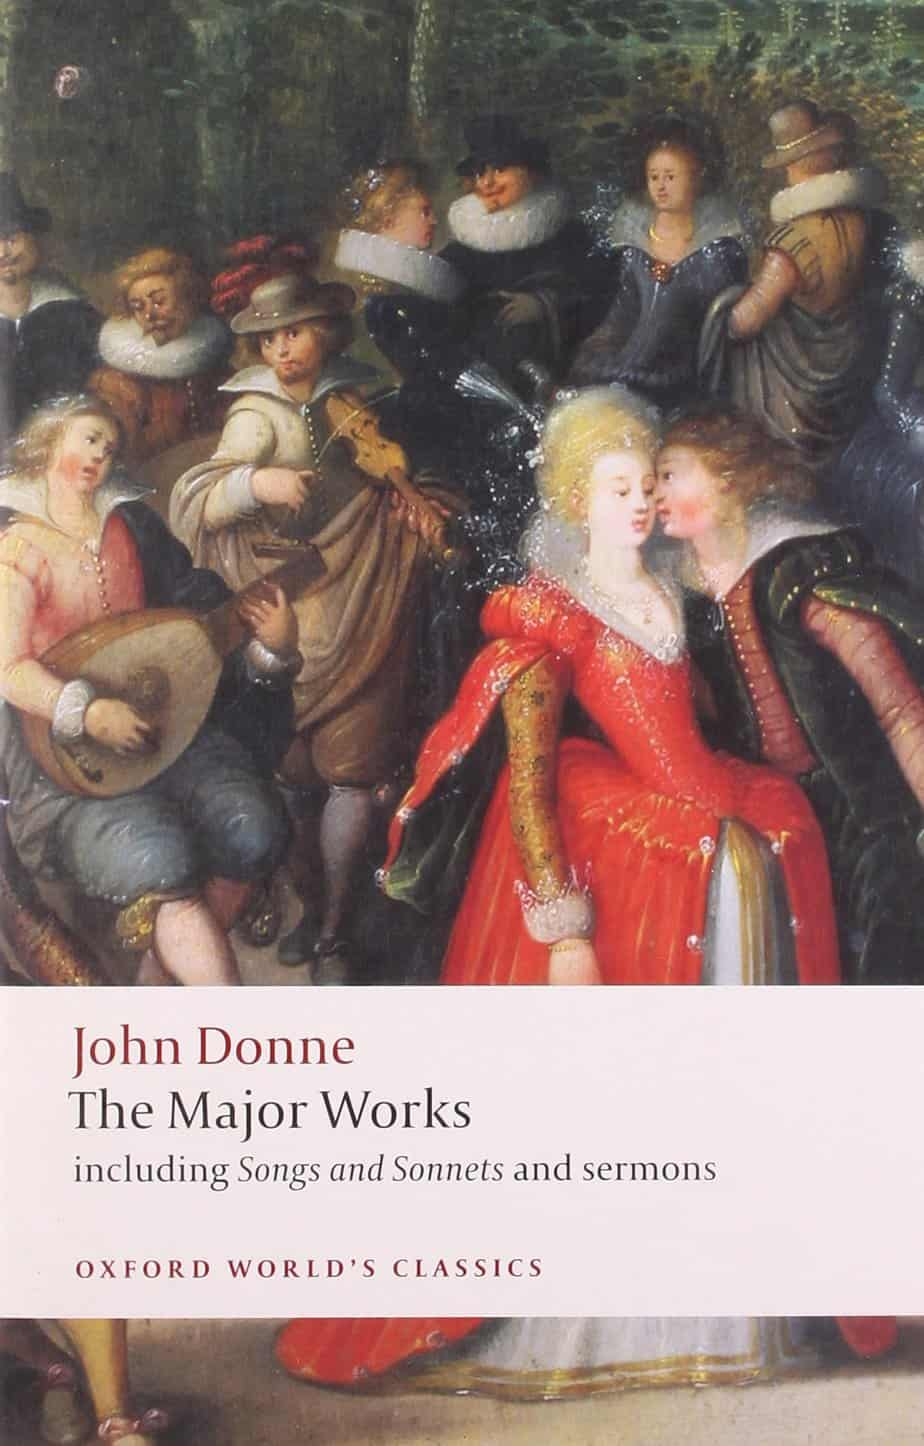 10 John Donne Poems Everyone Should Read – Interesting